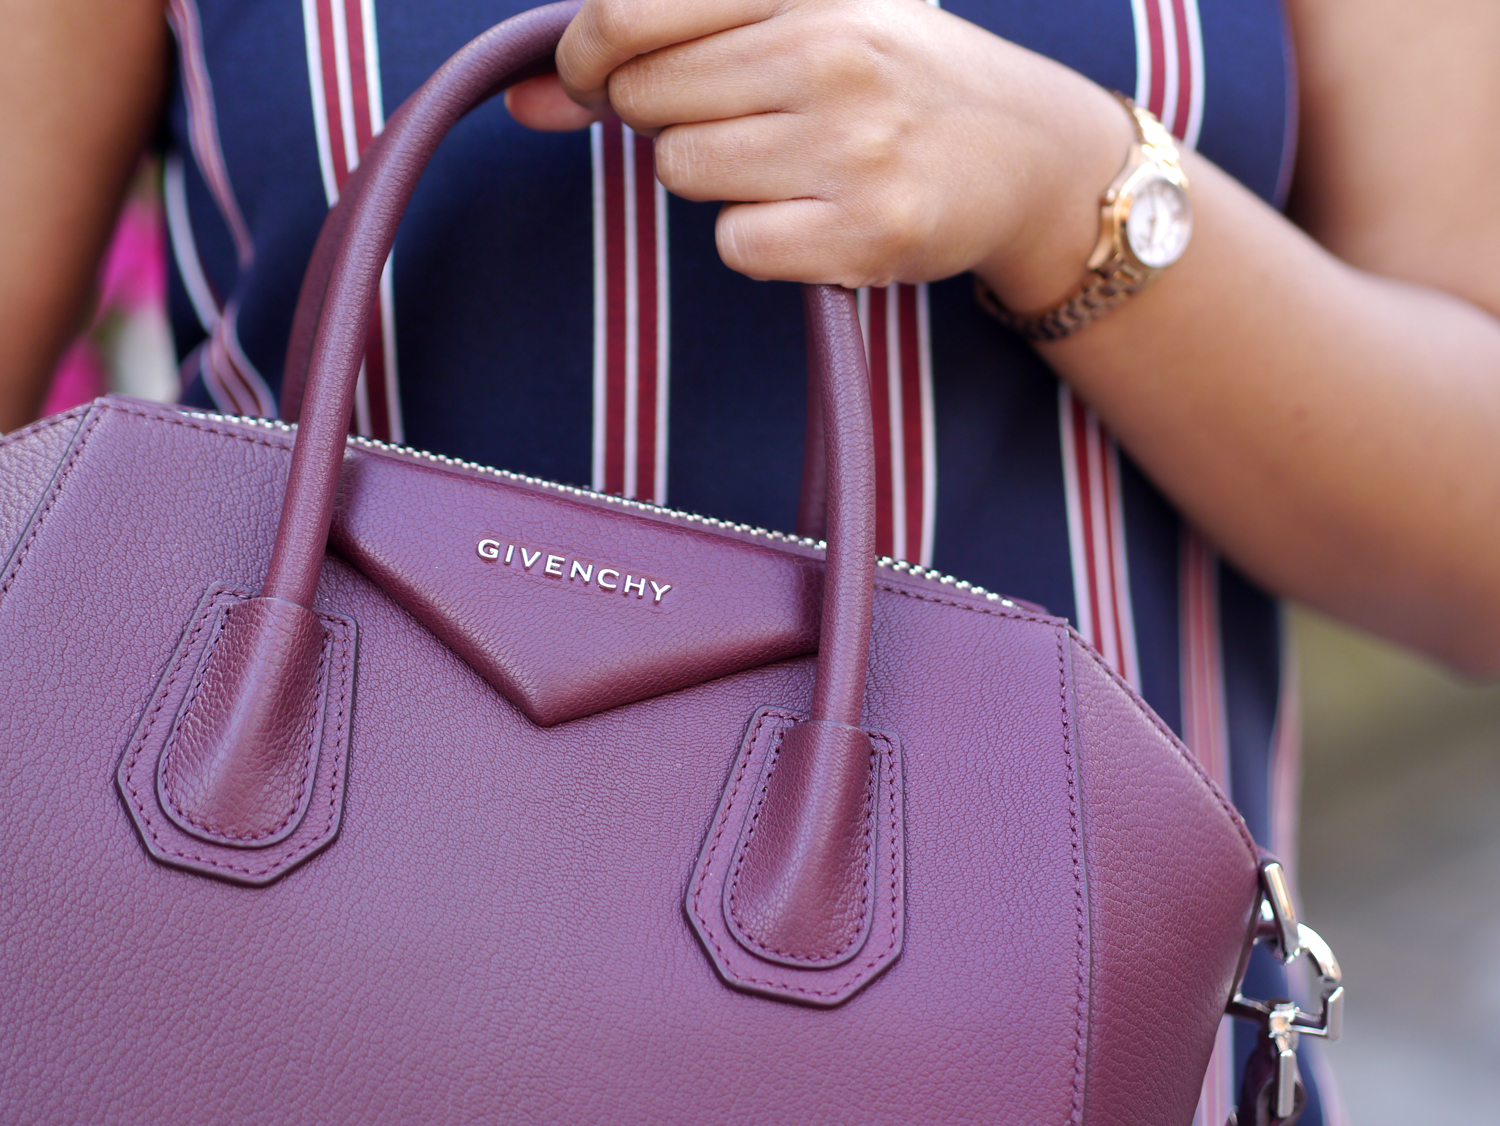 Investing in the Givenchy Antigona handbag